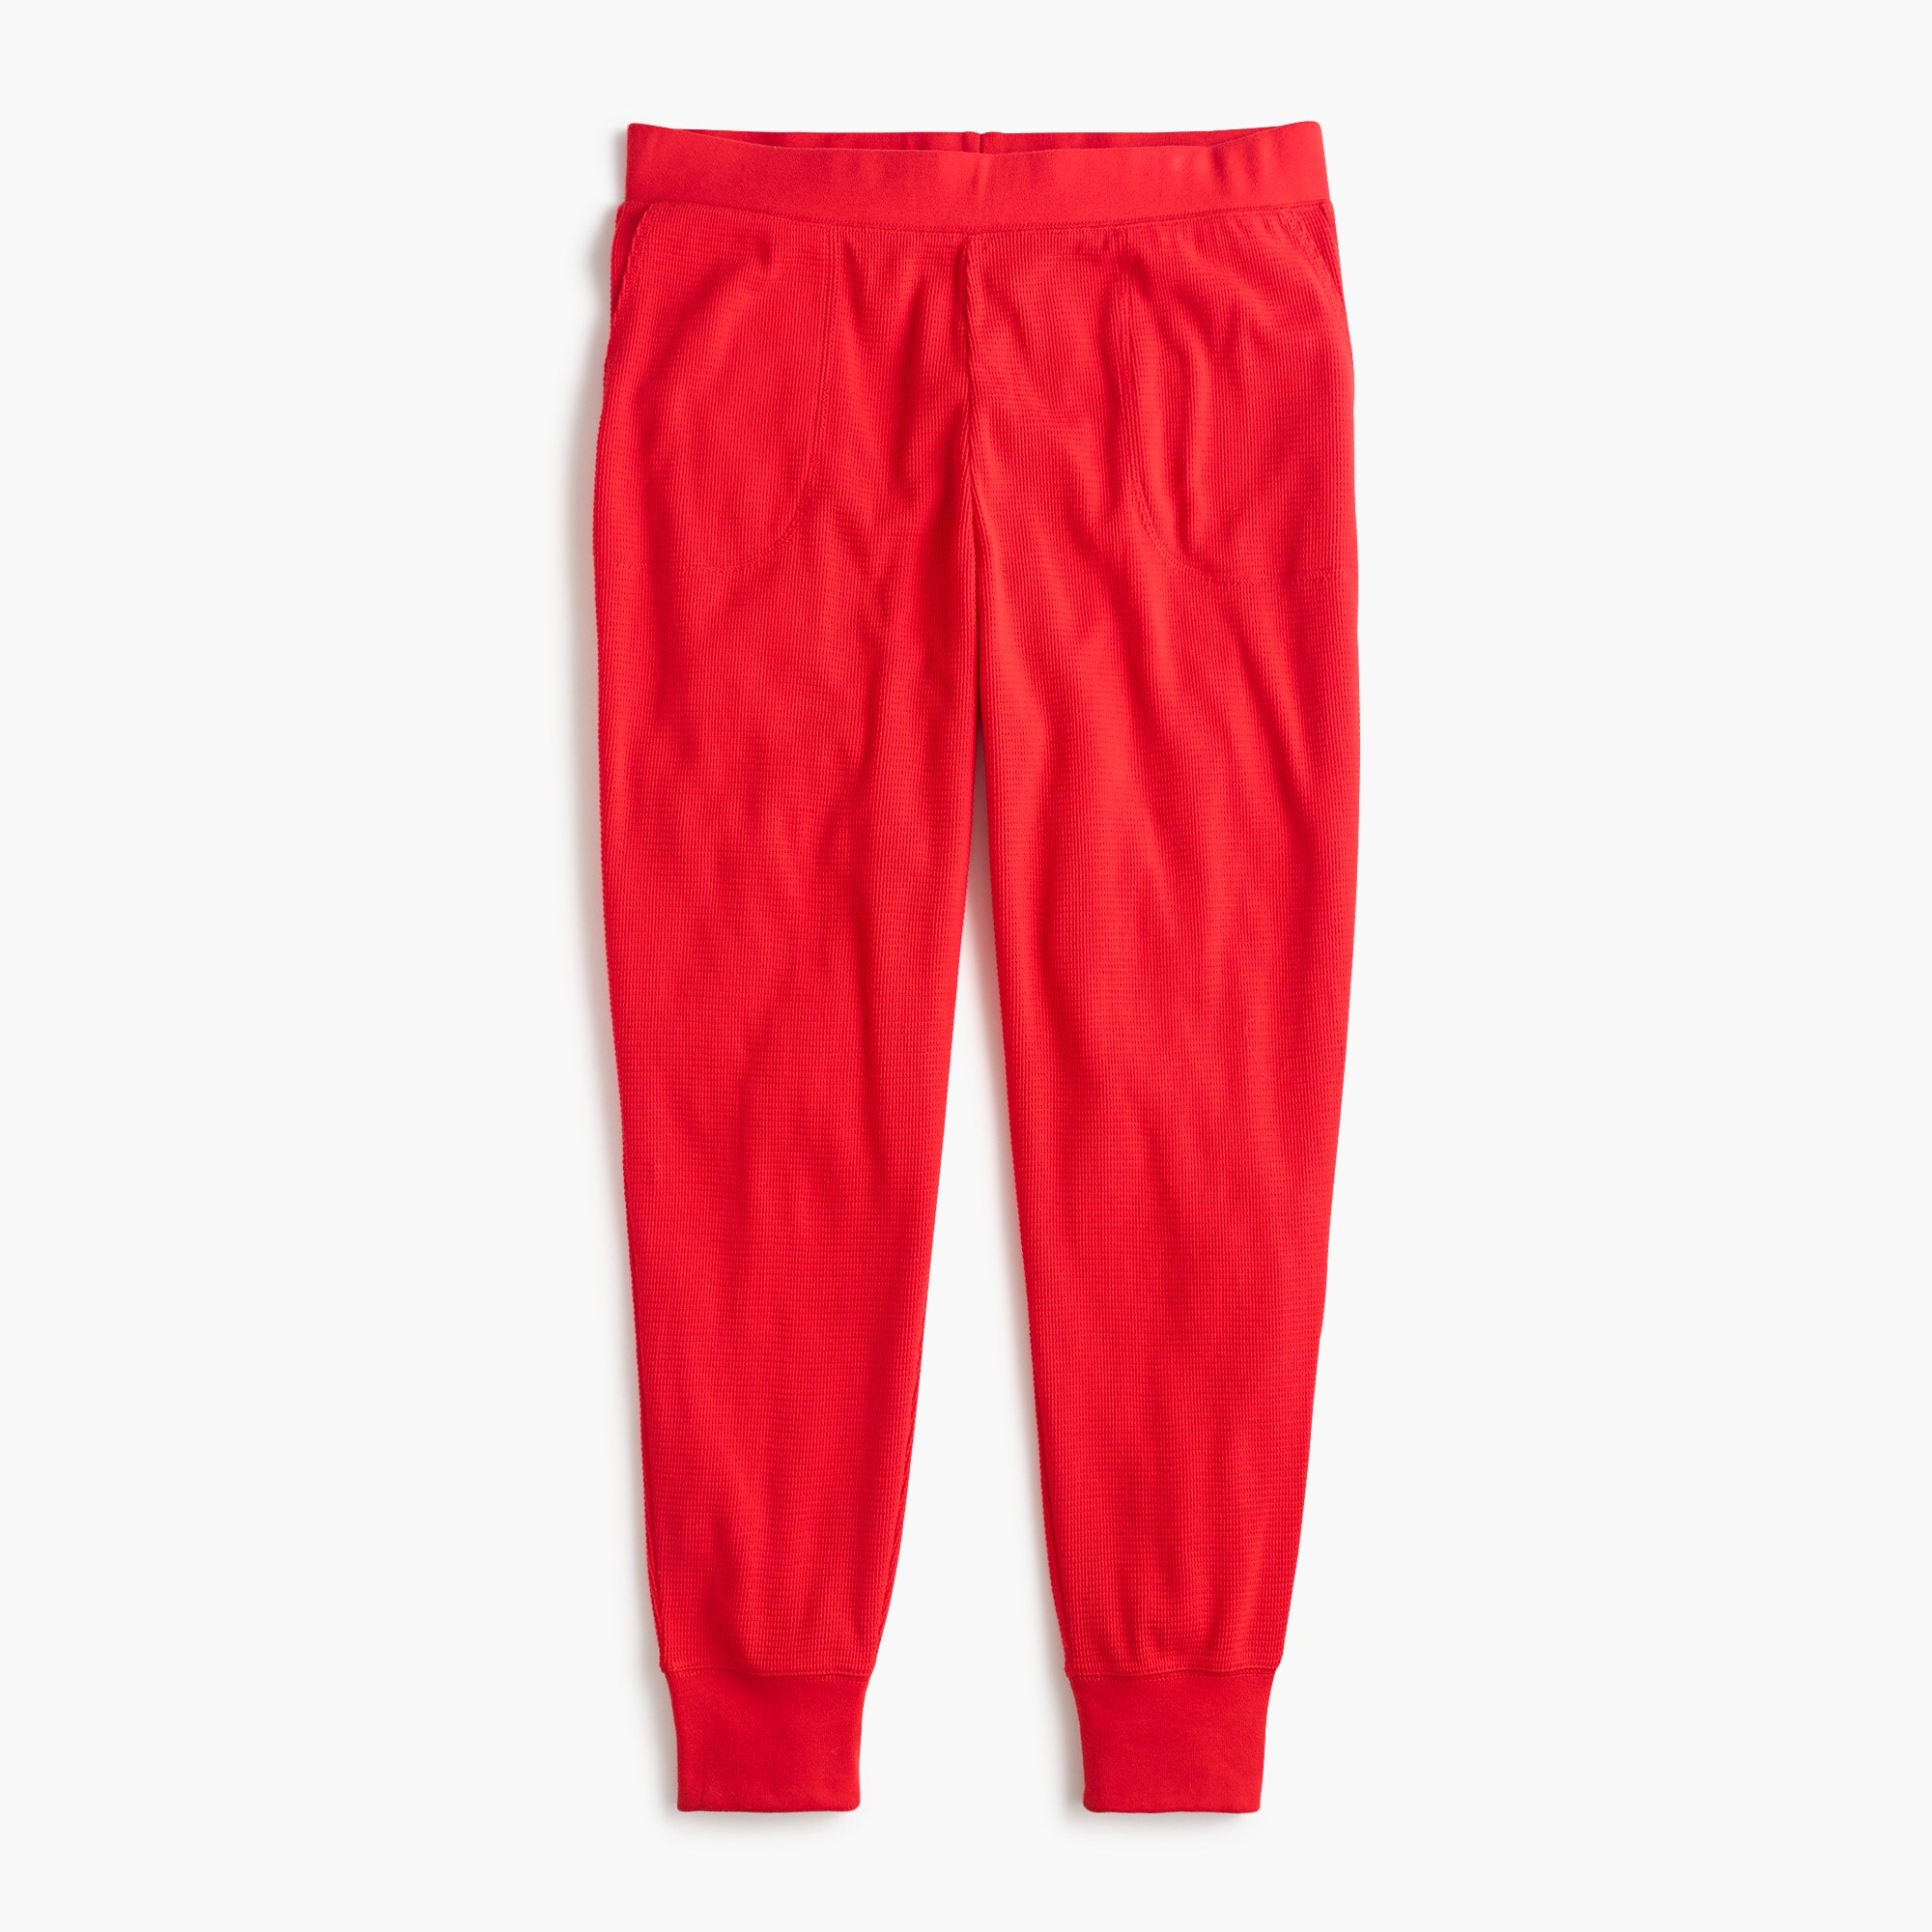 womens Pajama jogger pant in waffled cotton